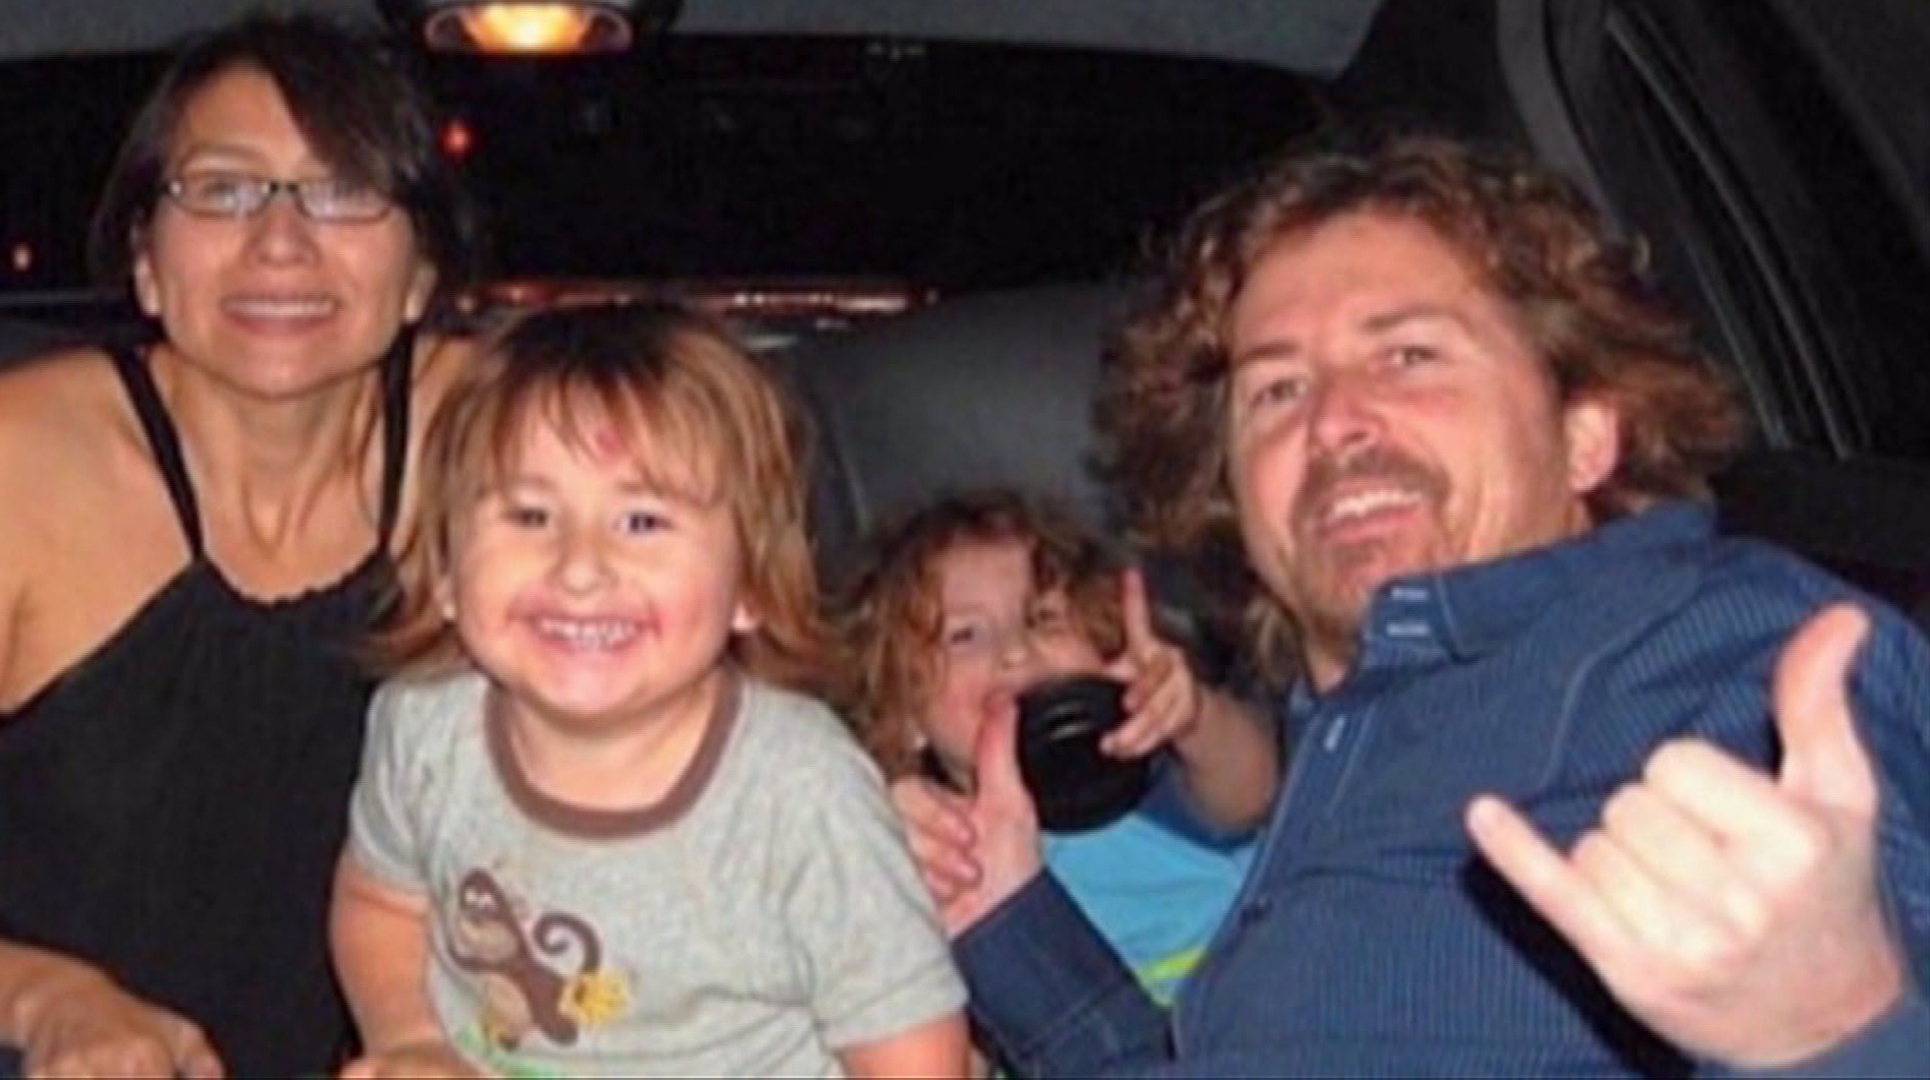 A family photo shows Joseph McStay, his wife Summer and sons Gianni and Joseph.